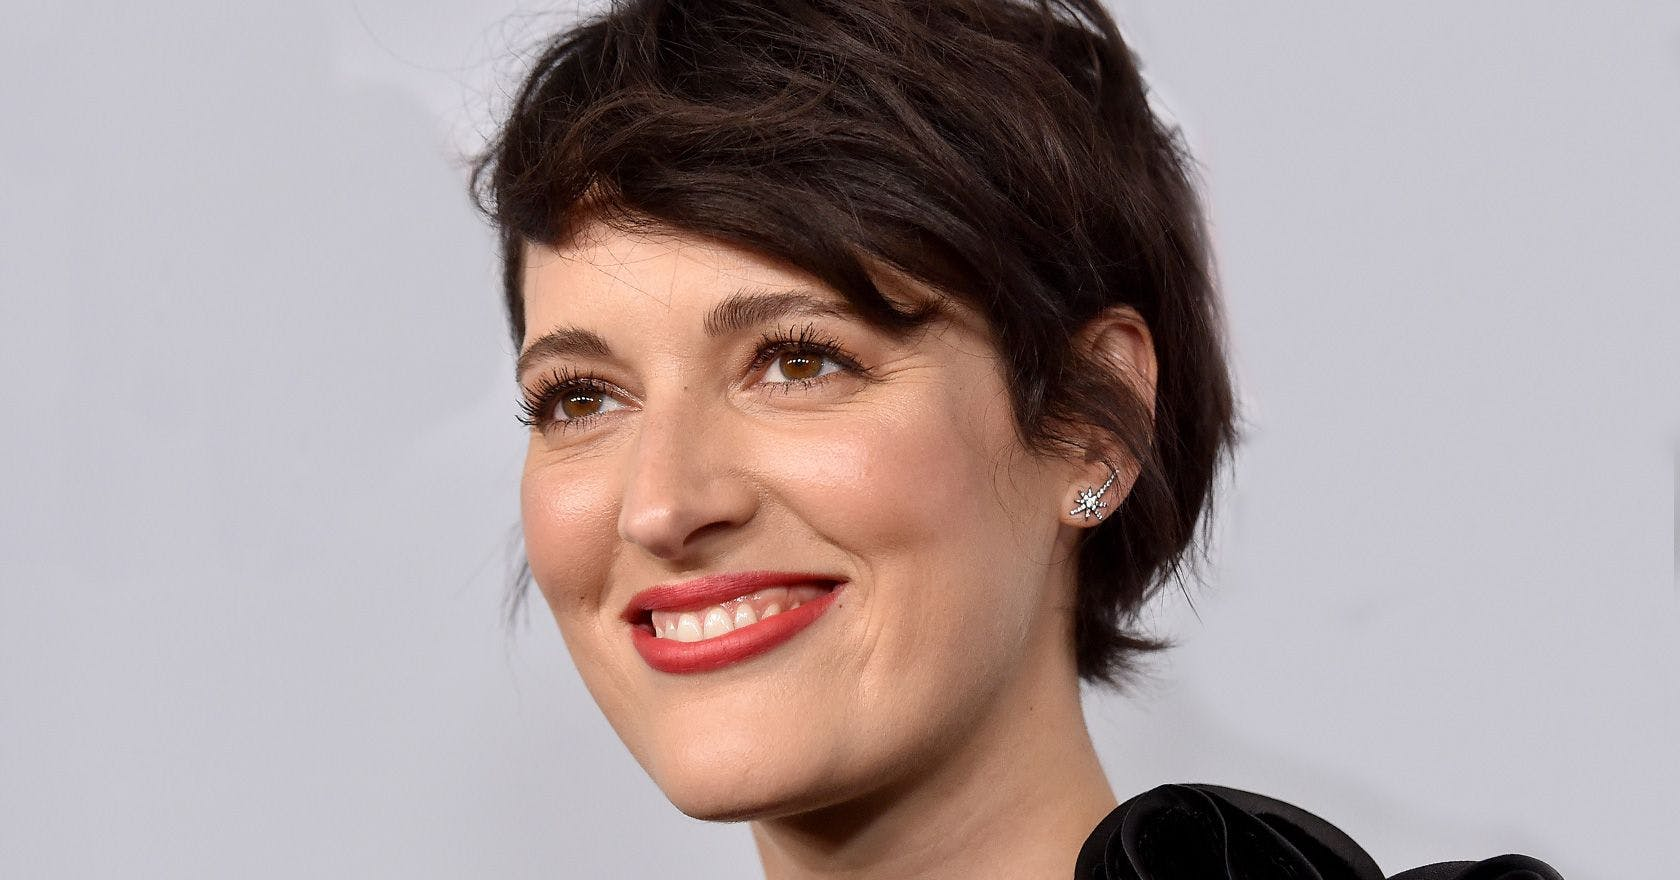 """Phoebe Waller-Bridge explains how being """"boring"""" helps her deal with fame"""